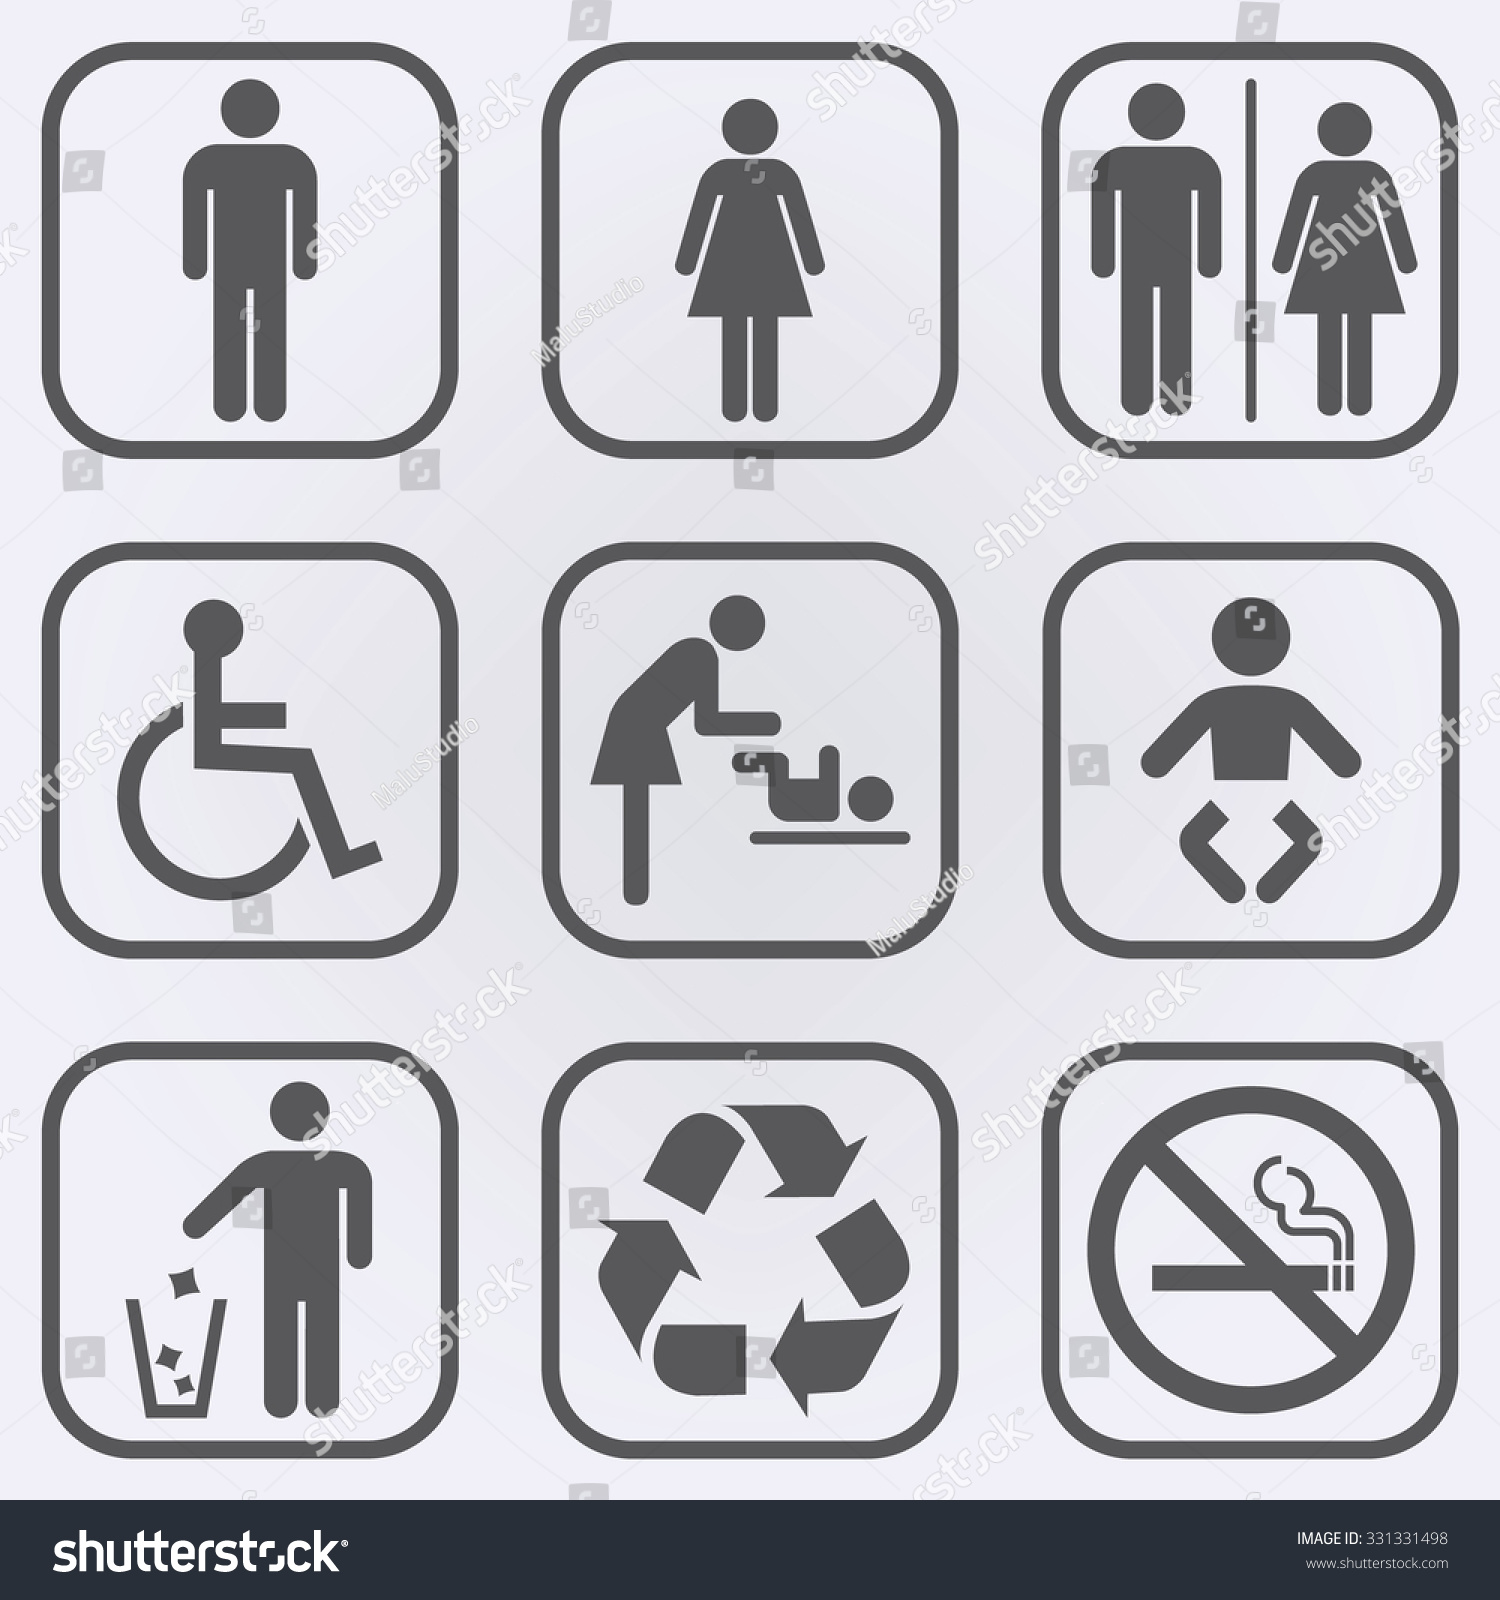 People Icon Set Toilet Restroom Icon Stock Vector